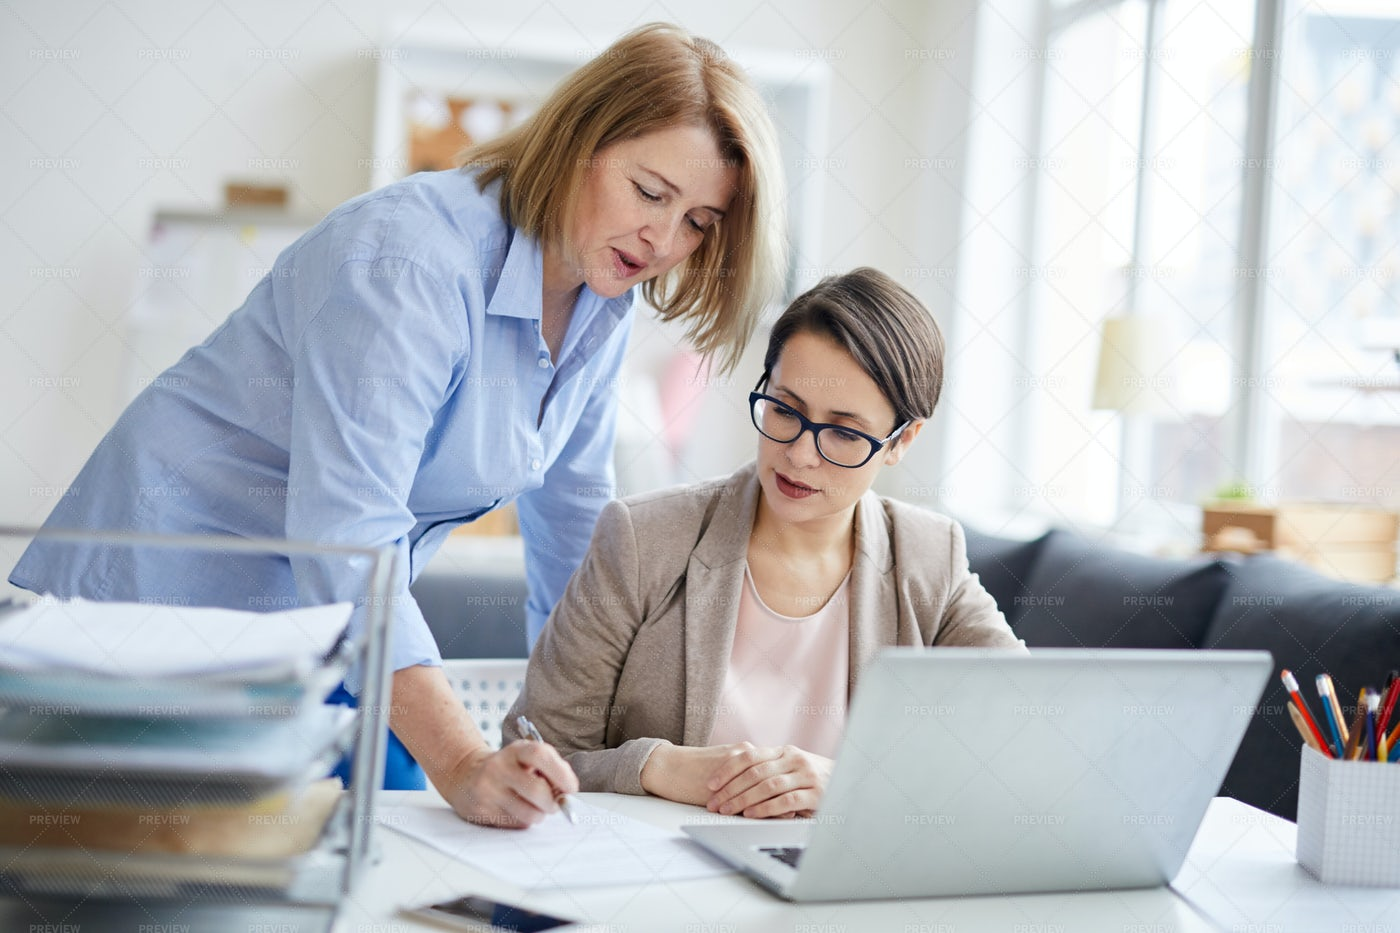 Female Manager Talking To Employee: Stock Photos